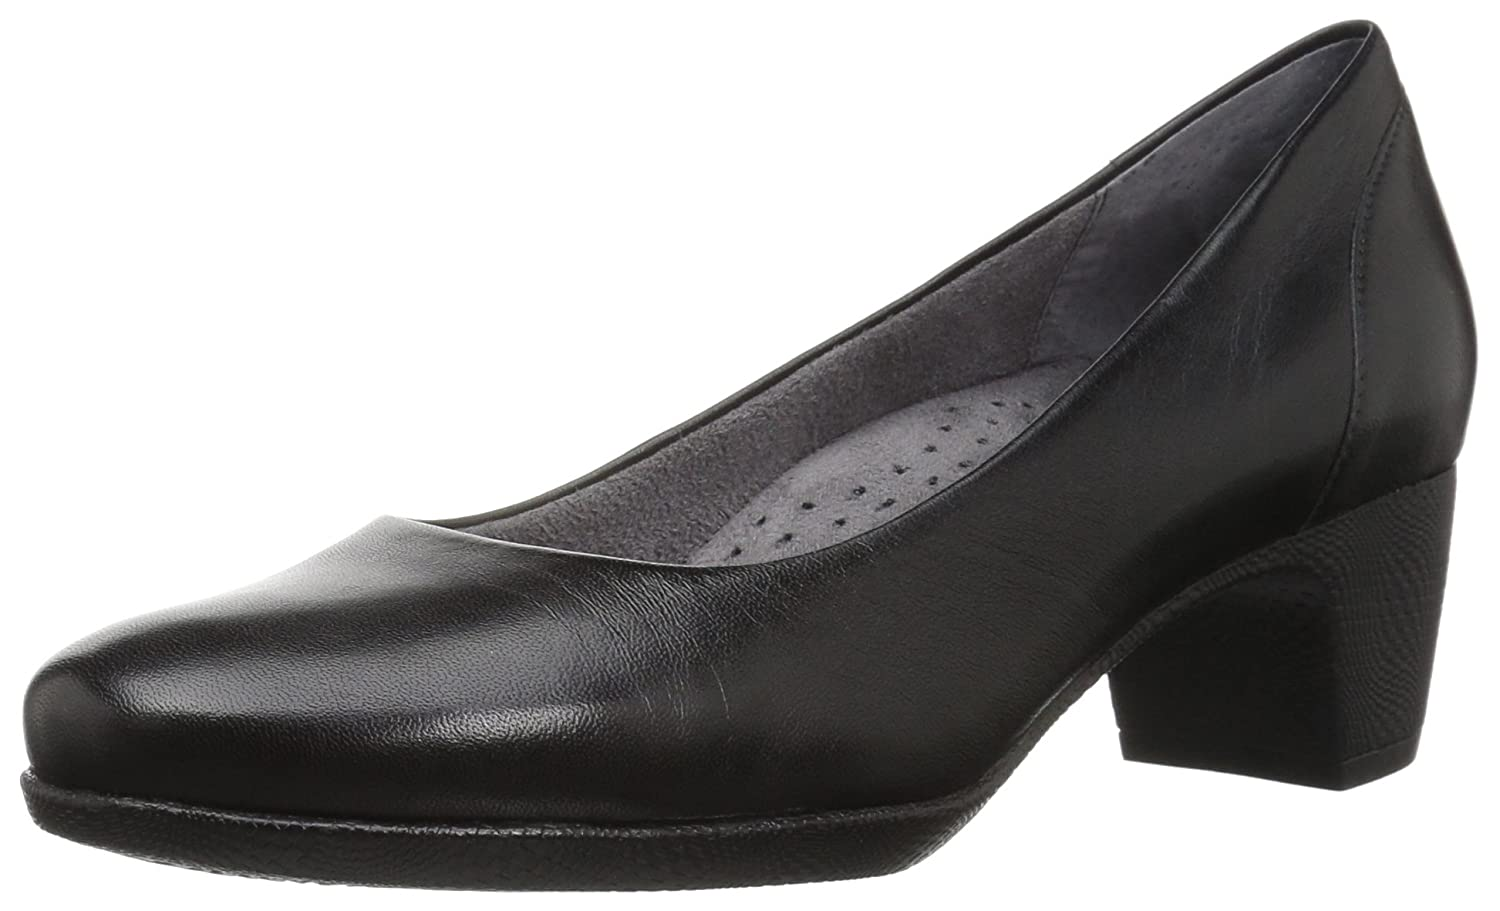 SoftWalk Women's Imperial Ii Dress Pump B01N1UQFTT 8.5 B(M) US|Black